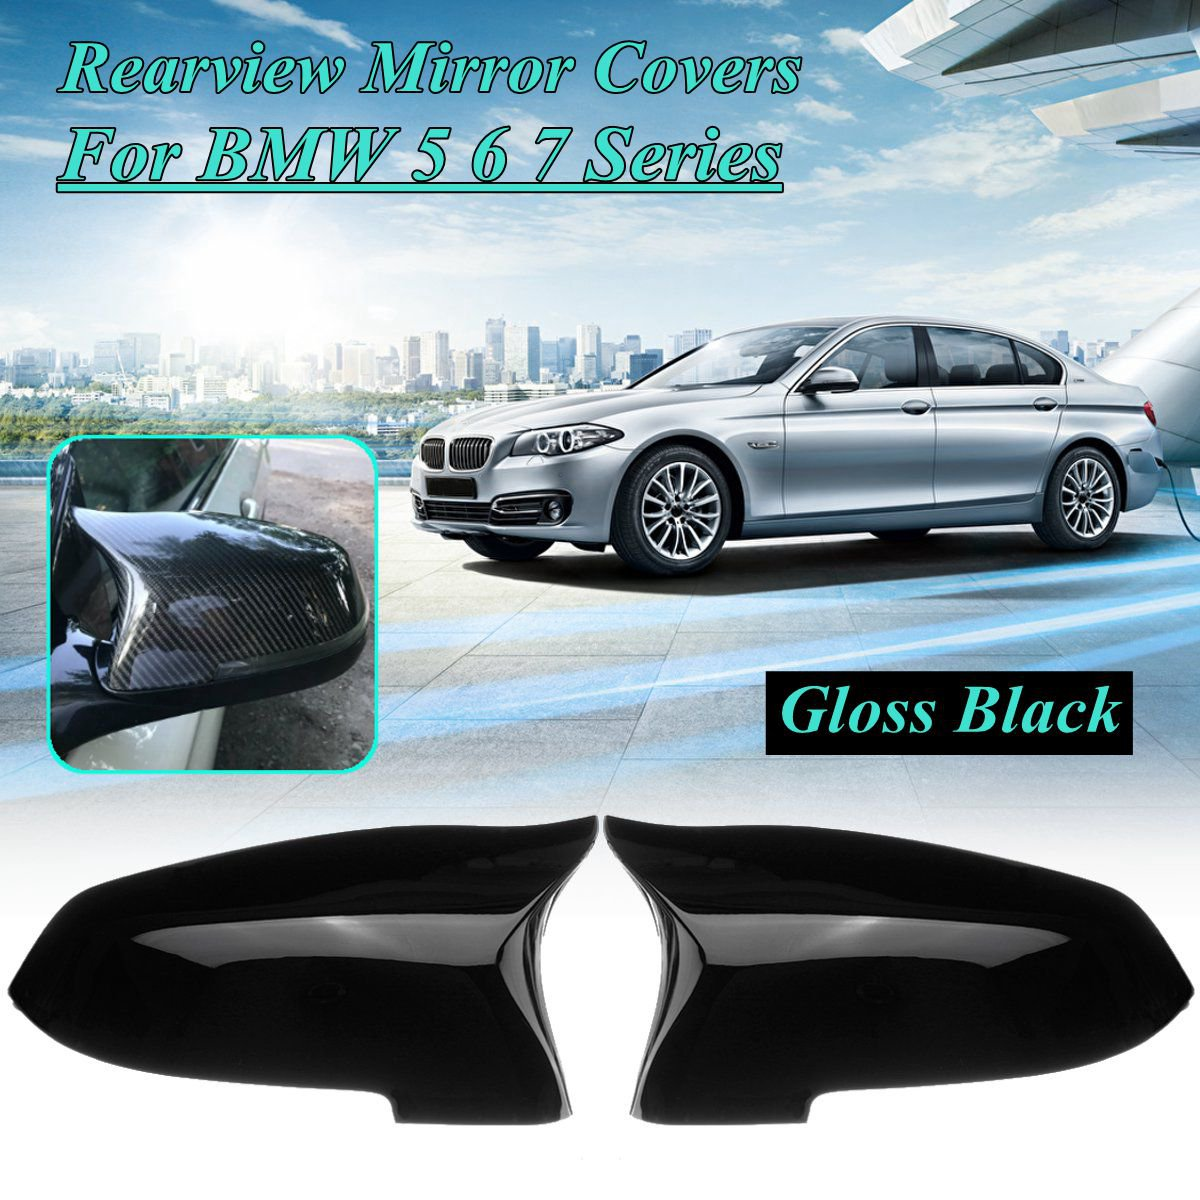 Pair Mirror Covers Left Right Side Rearview Mirror Cover Cap For <font><b>BMW</b></font> 5 6 7 Series F10 F18 <font><b>F11</b></font> F06 F07 F12 F13 F01 2014 <font><b>2015</b></font> 2016 image